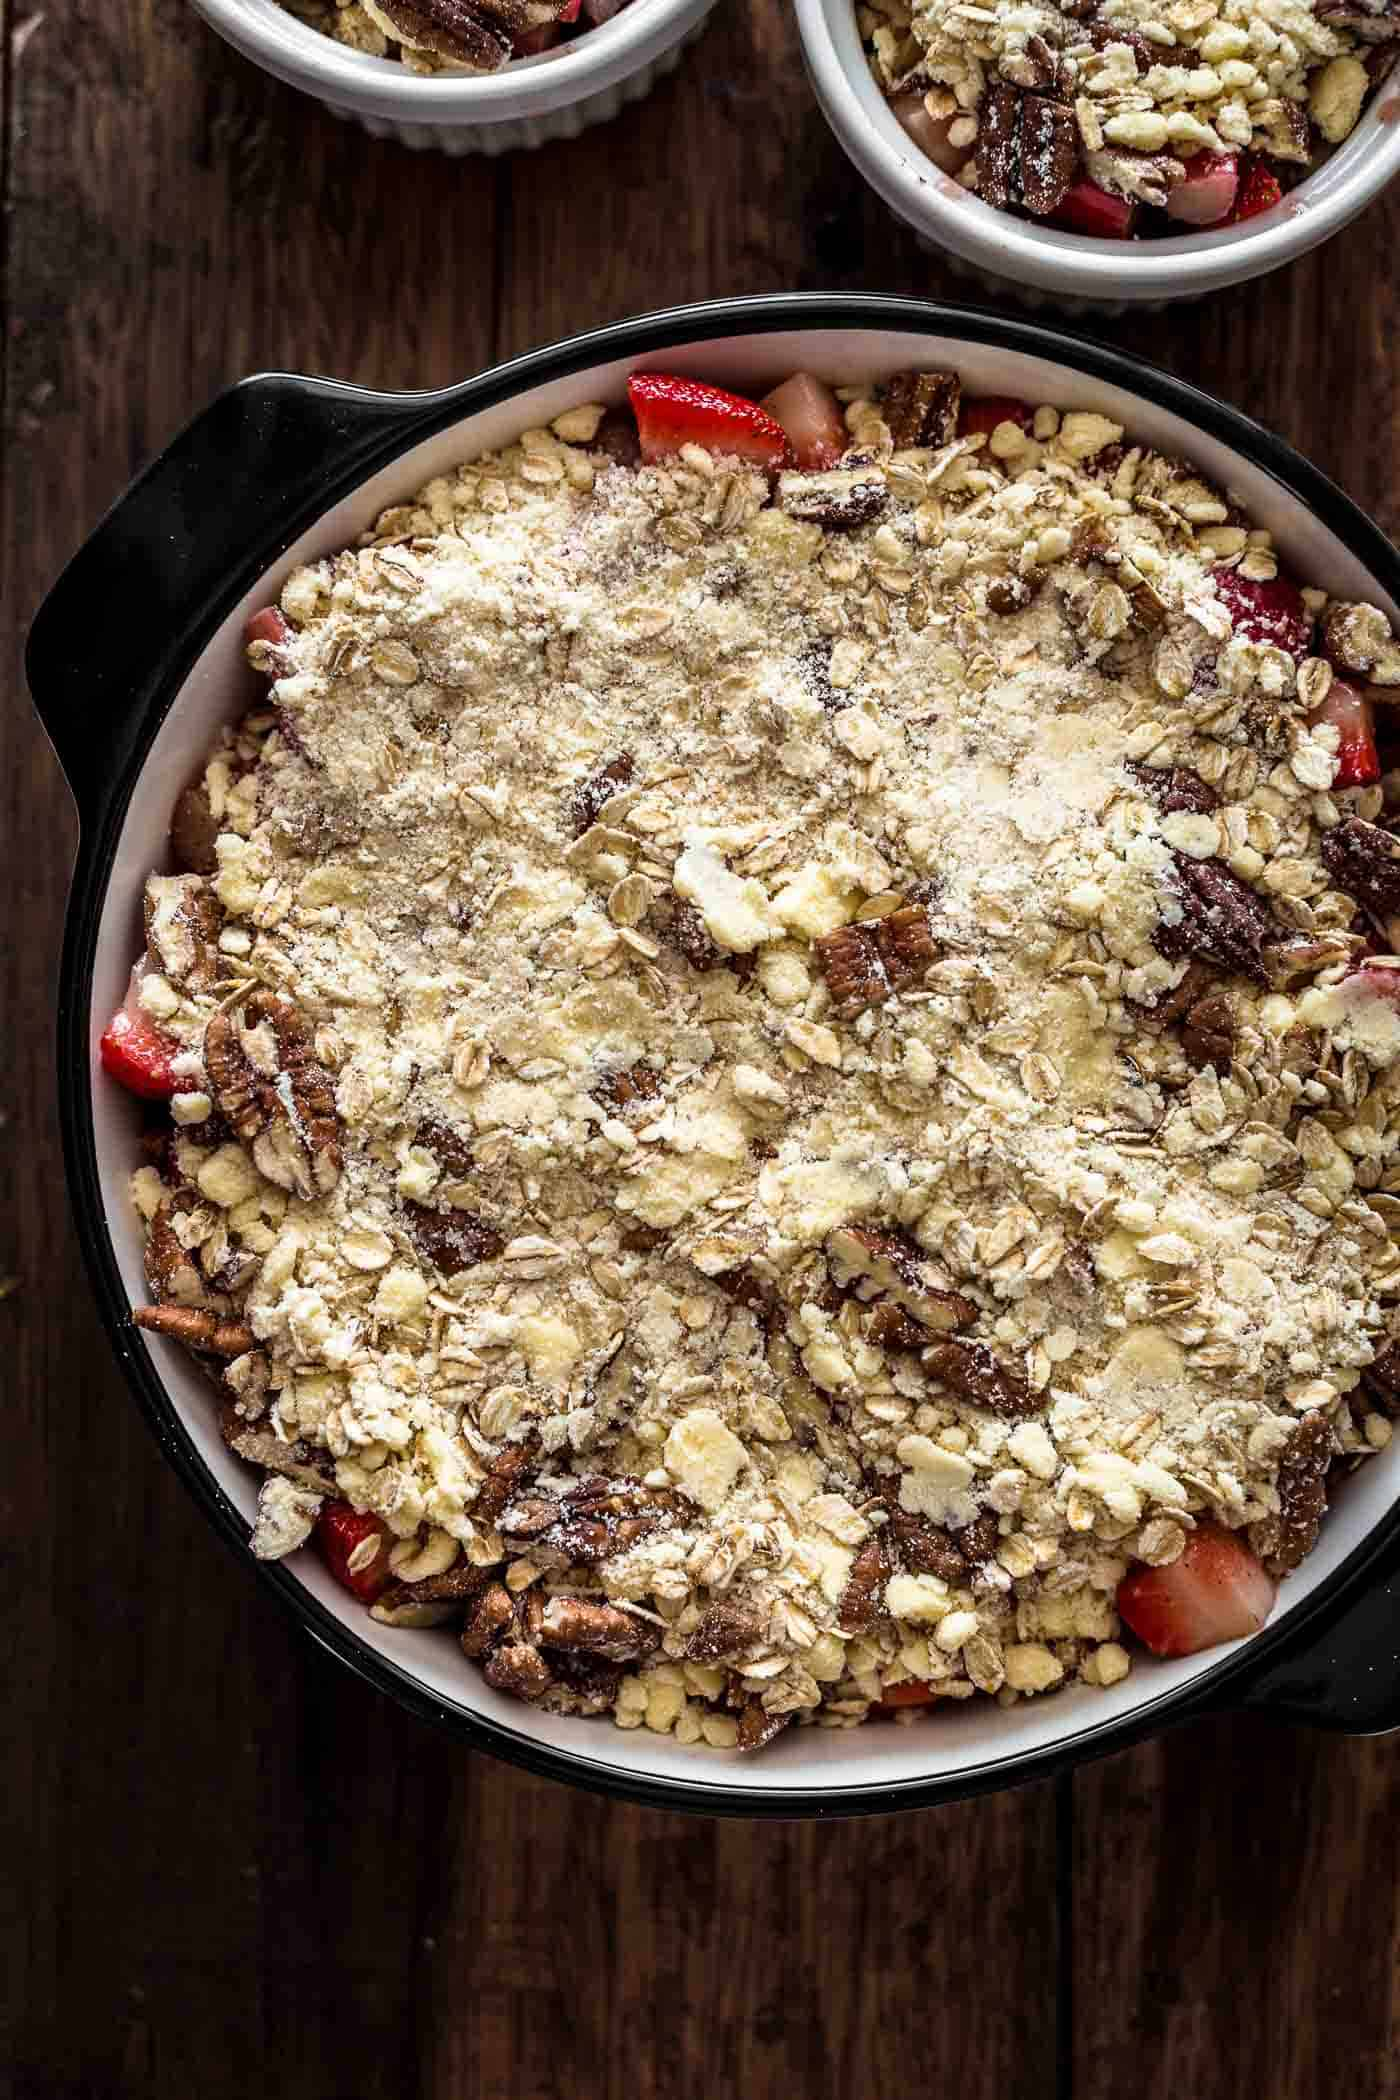 Unbaked Strawberry Rhubarb Crisp in baking dish